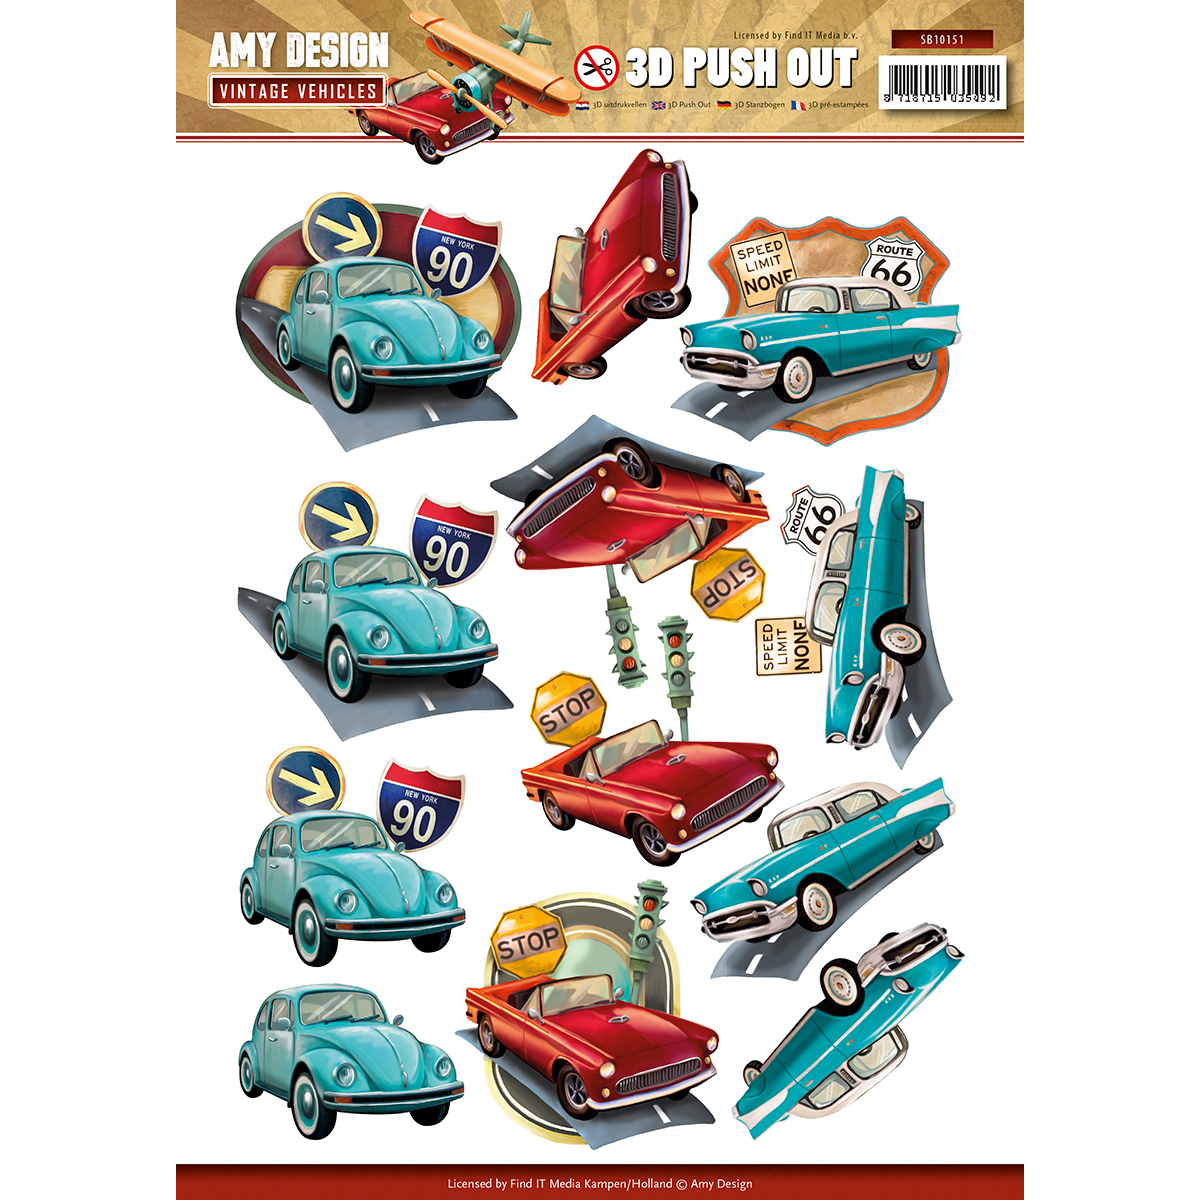 Automobiles - Find It Amy Design Vintage Vehicles Punchout Sheet